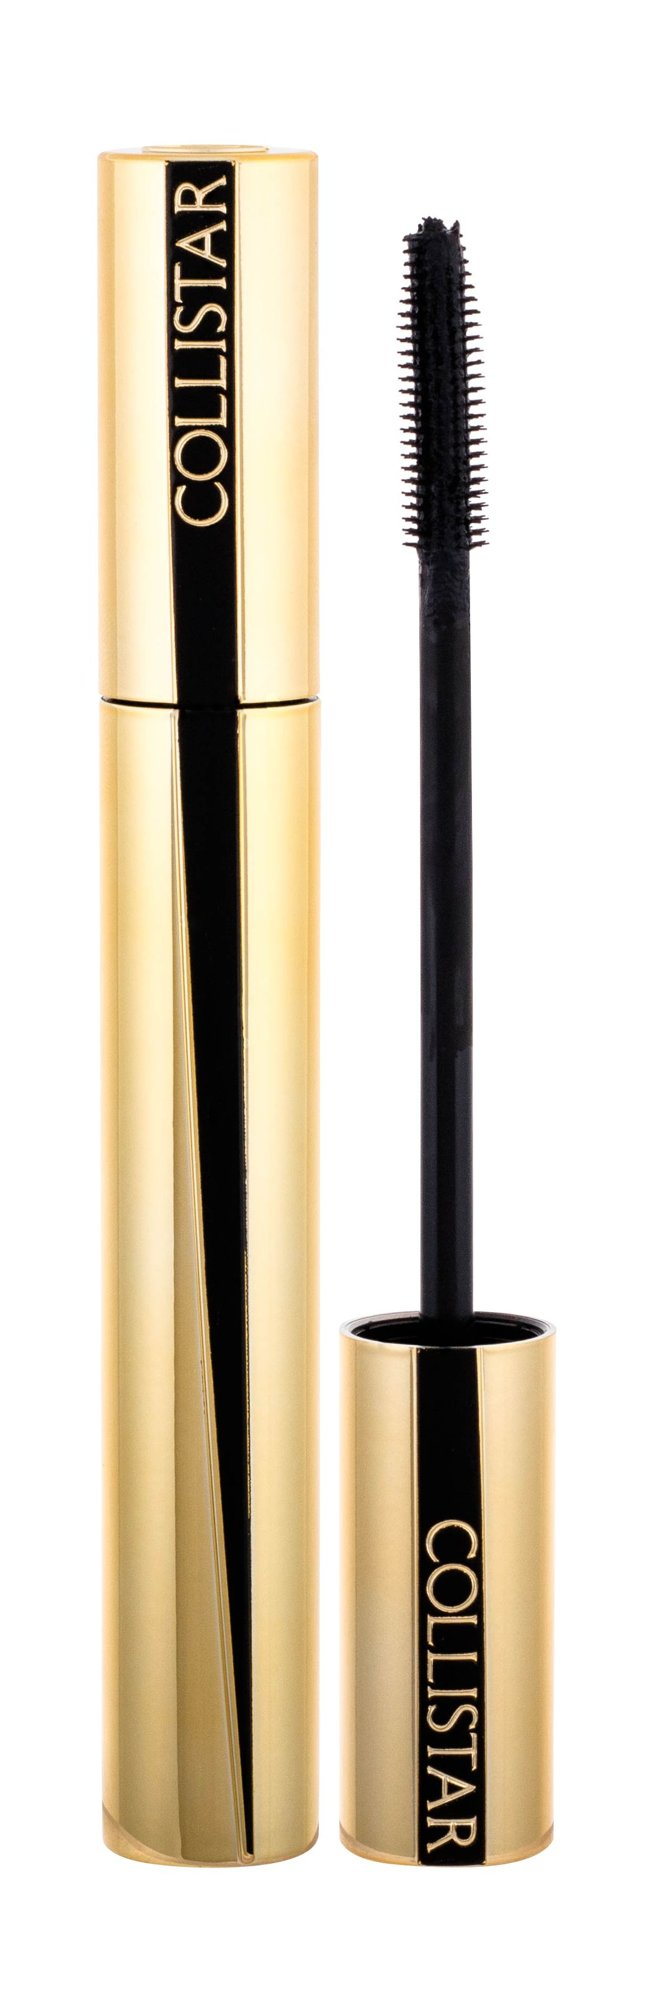 Collistar Infinito Mascara 11ml Black